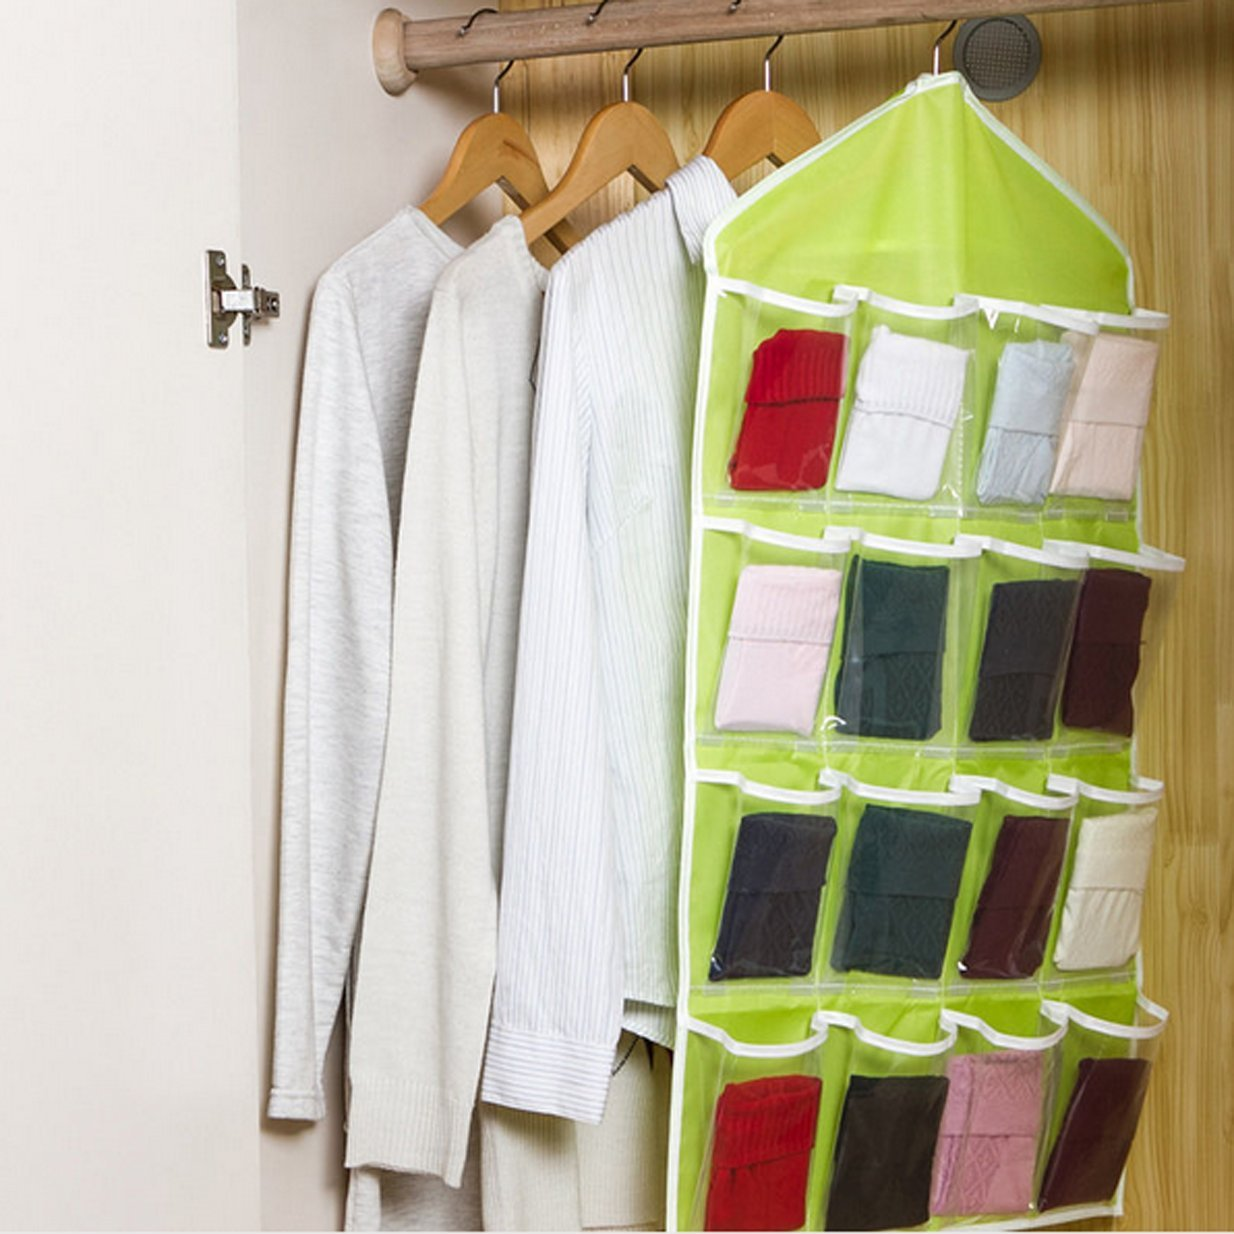 green Lalang 16 Lots Socks //Jewelry//Underwear Hanging Storage Pockets Bags Closet Space Storage